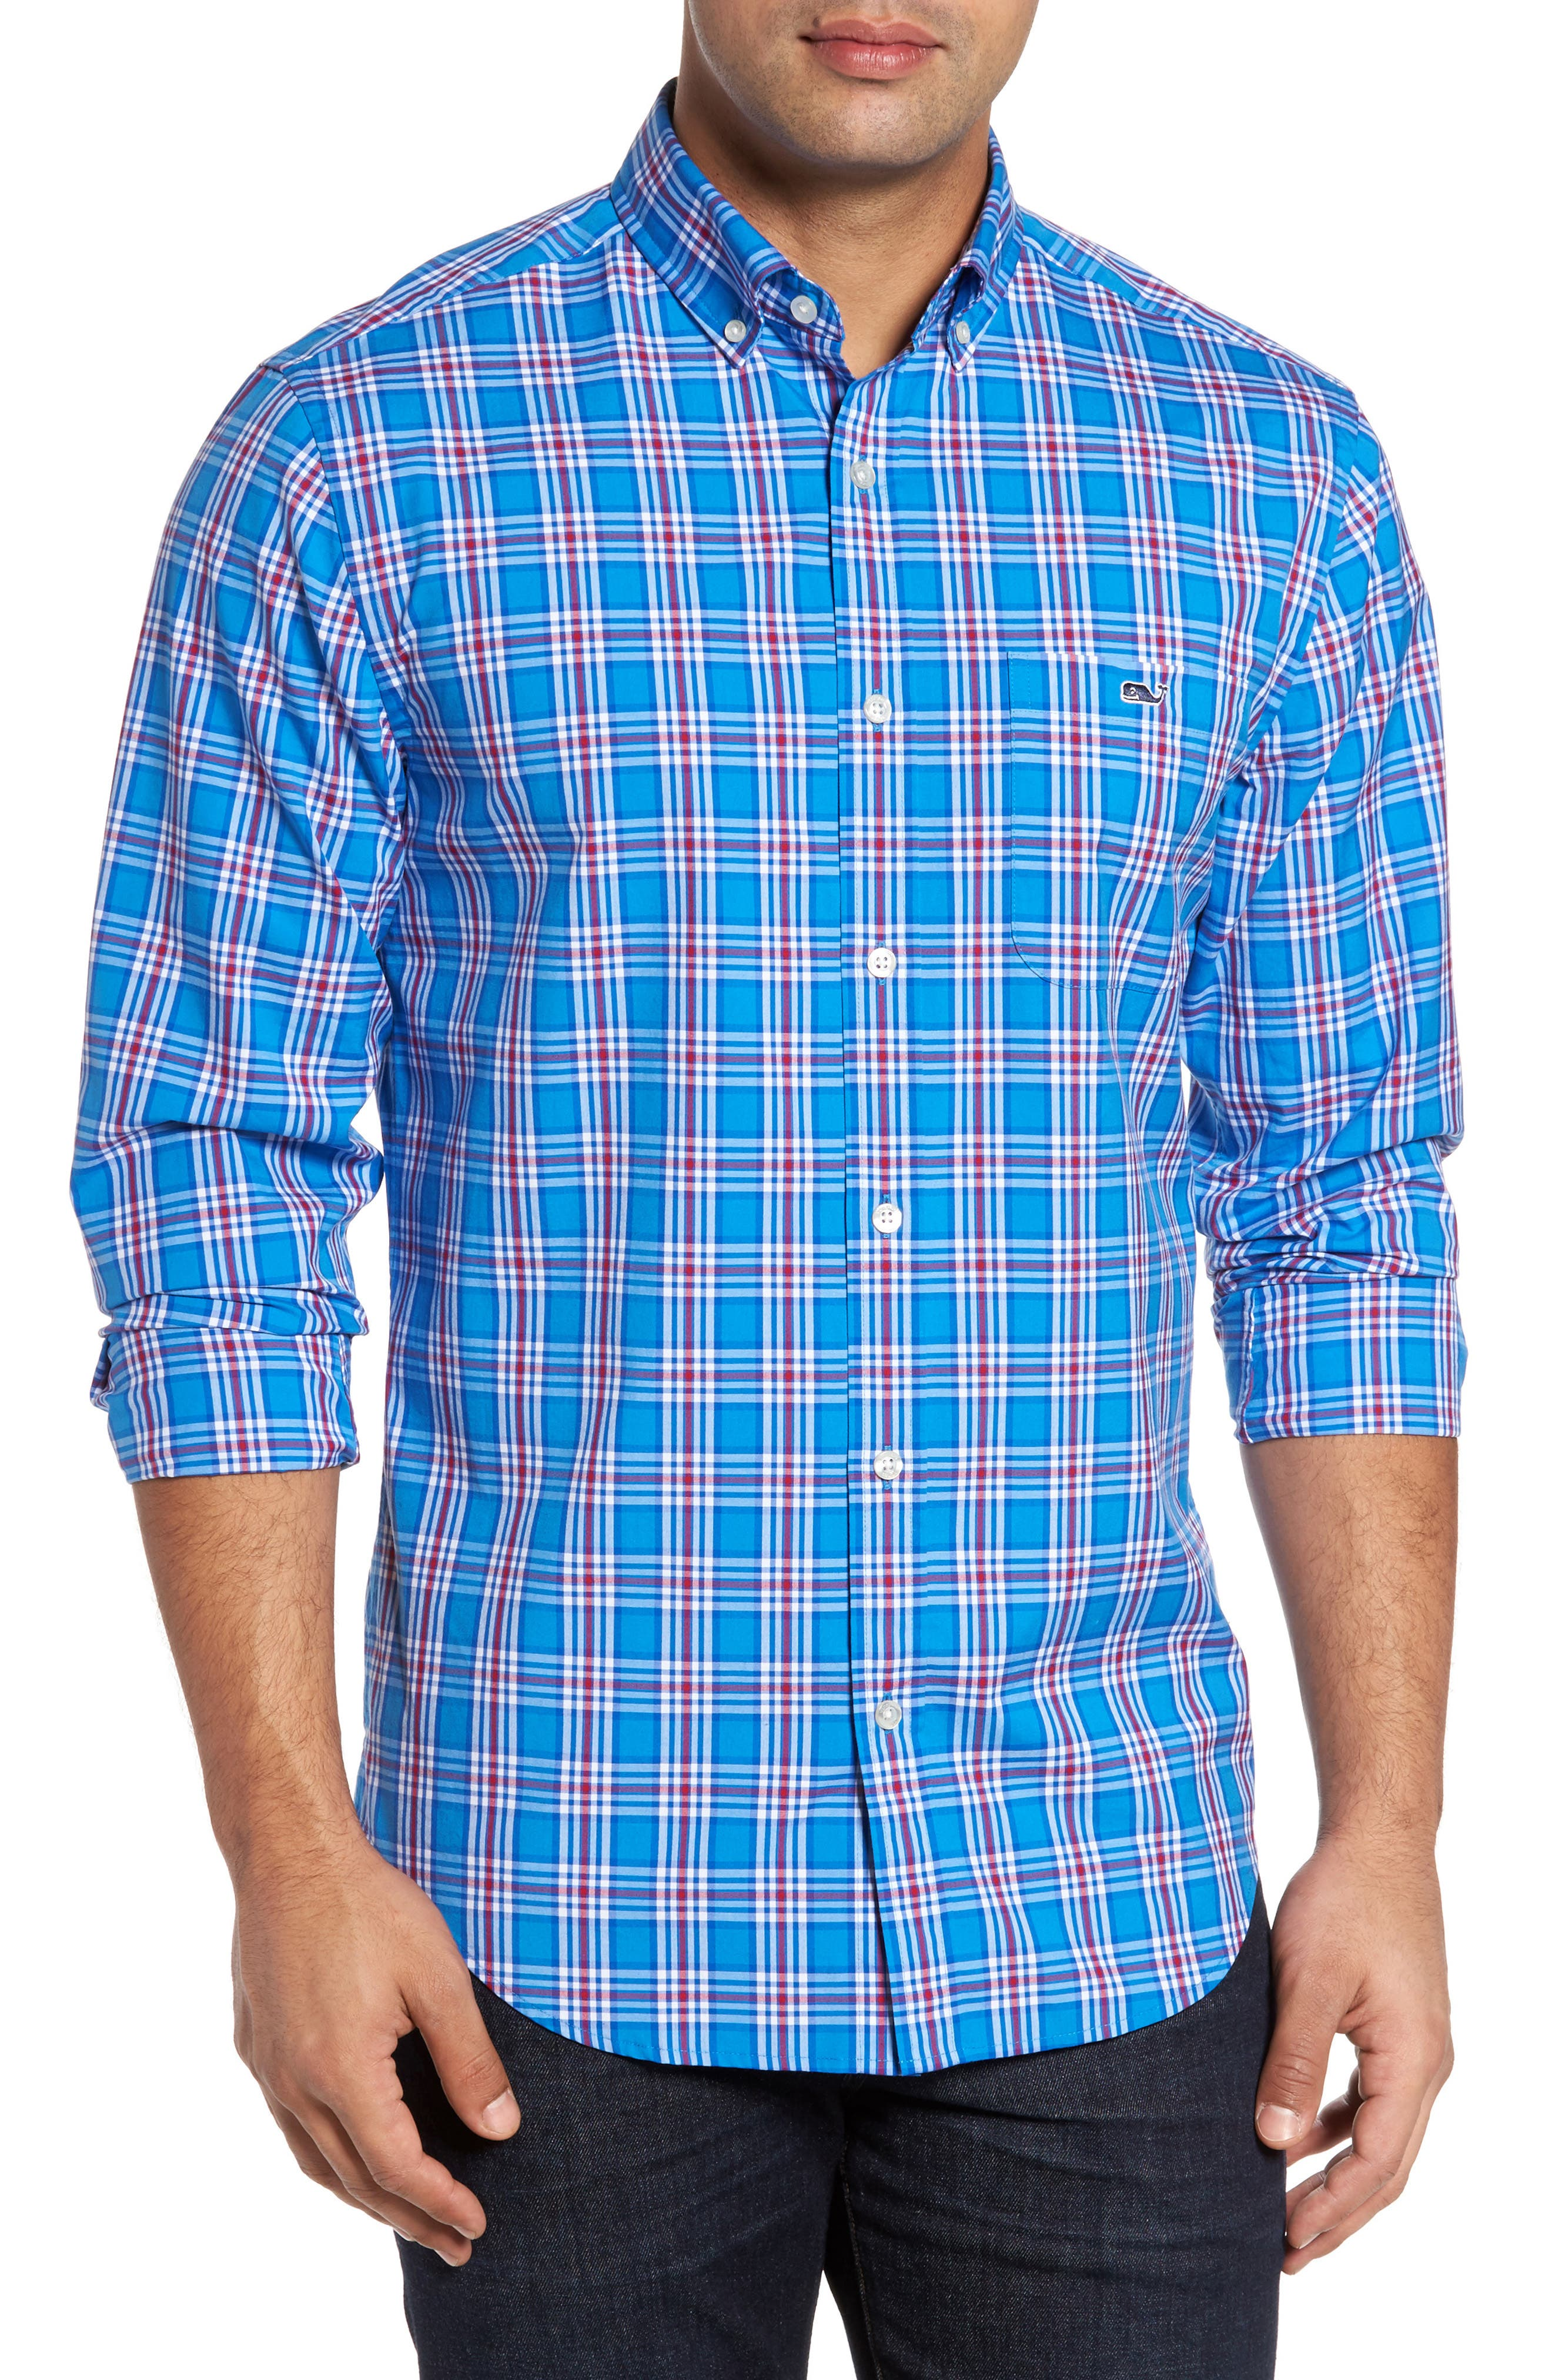 Tucker Chandler Pond Classic Fit Plaid Sport Shirt,                         Main,                         color, Hull Blue